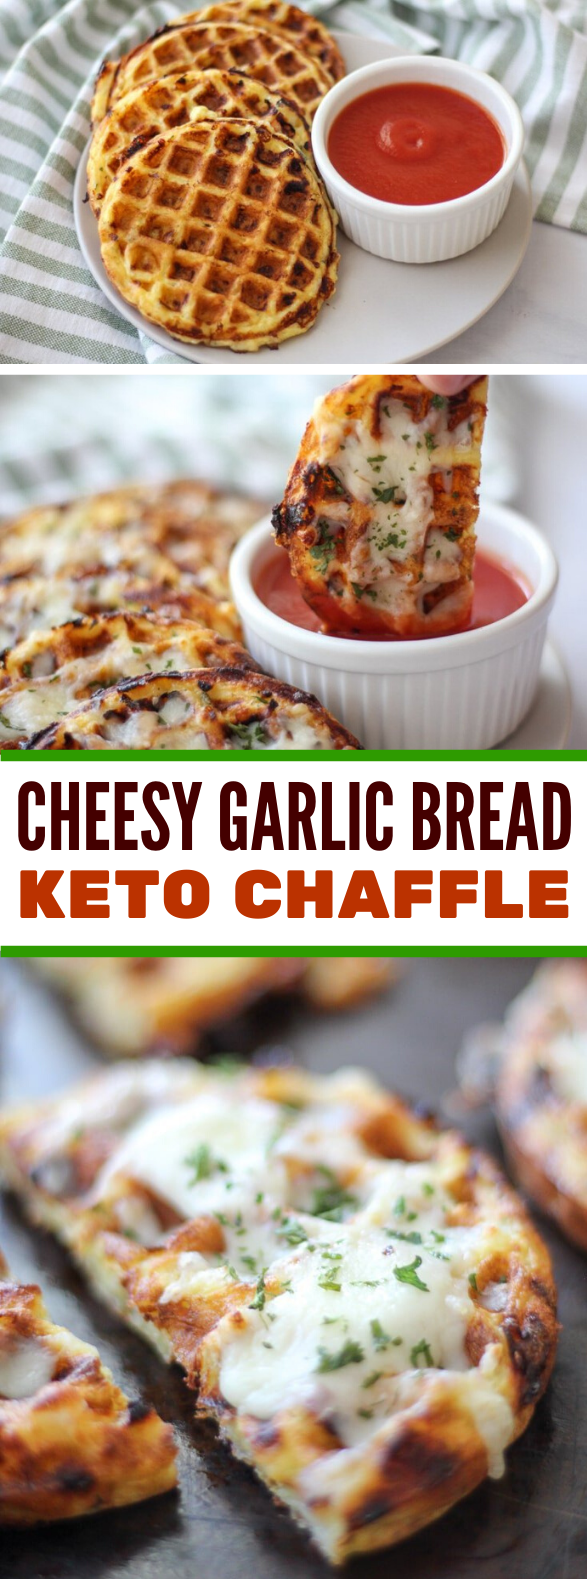 EASY KETO CHEESY GARLIC CHAFFLE BREAD #healthy #appetizers